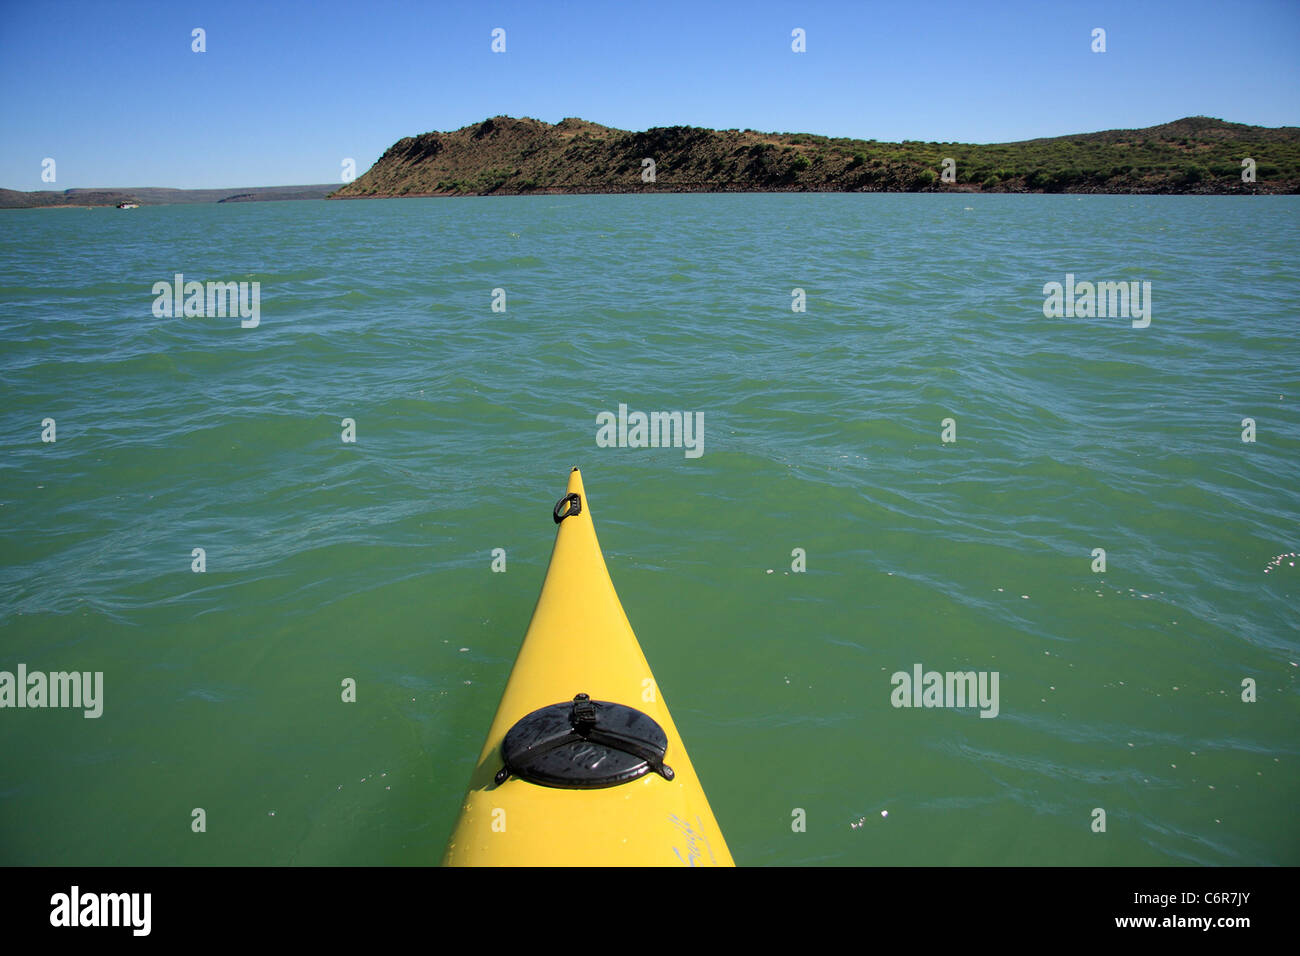 View from a yellow kayak on Van Der Kloof Dam - Stock Image